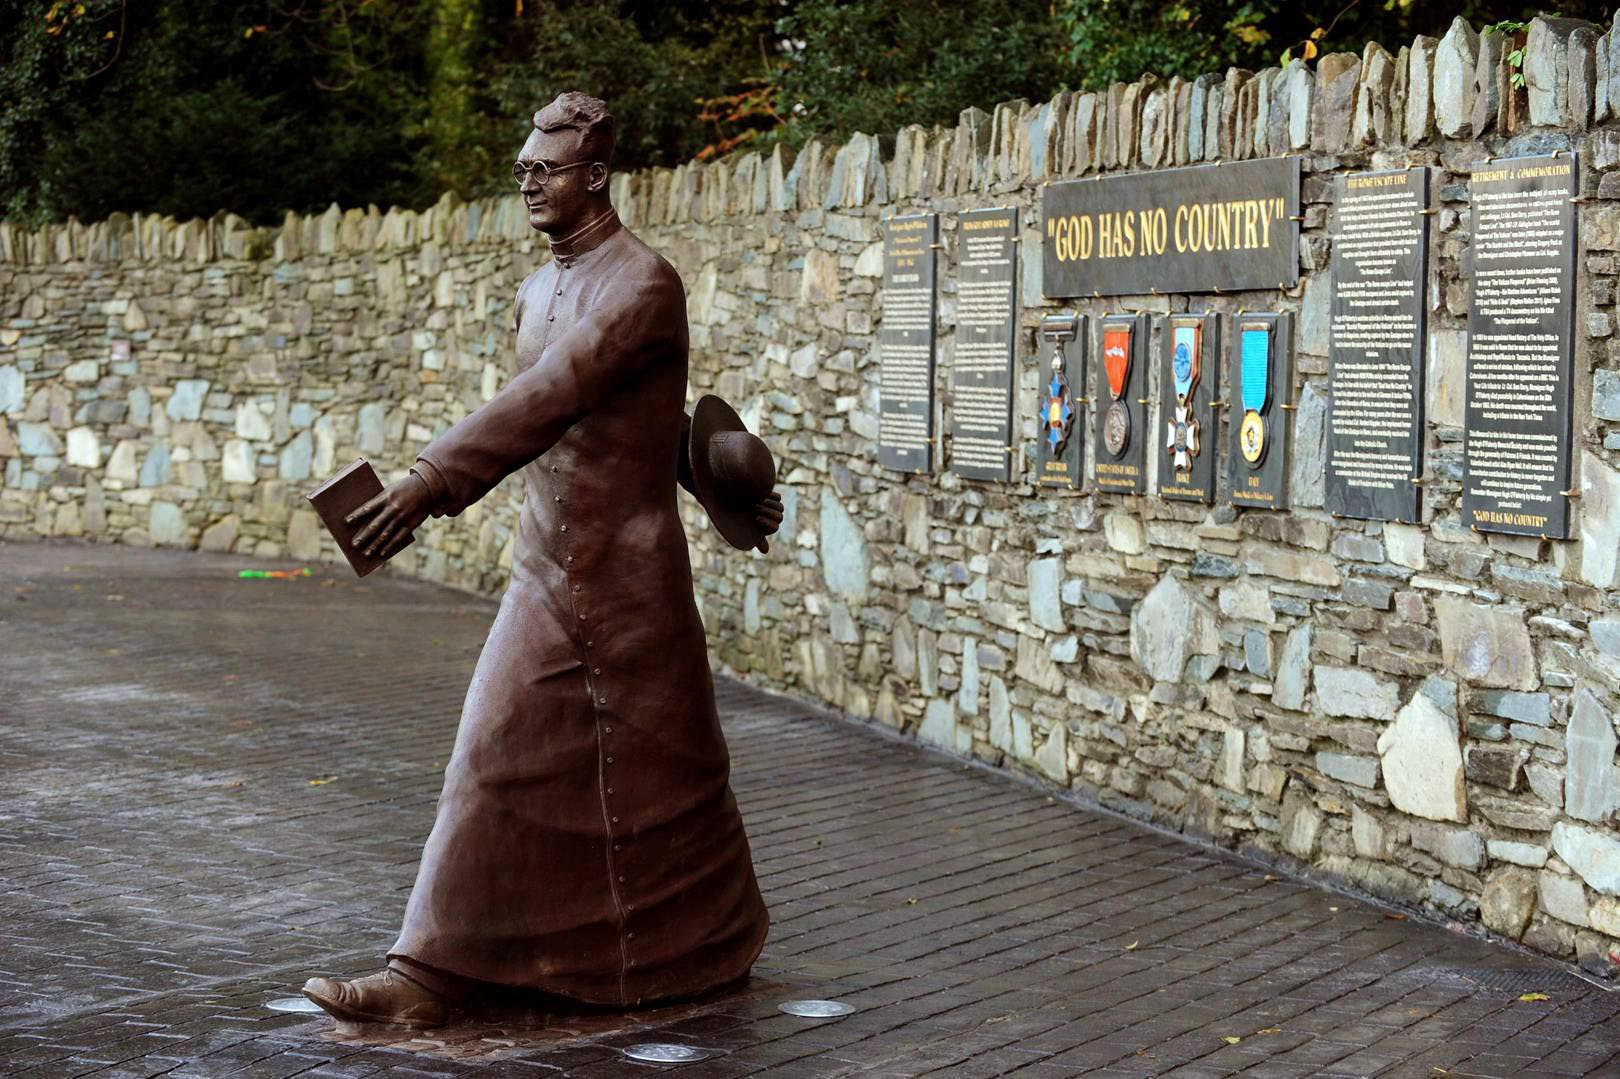 Monsignor Hugh O'Flaherty Statue in Killarney, County Kerry